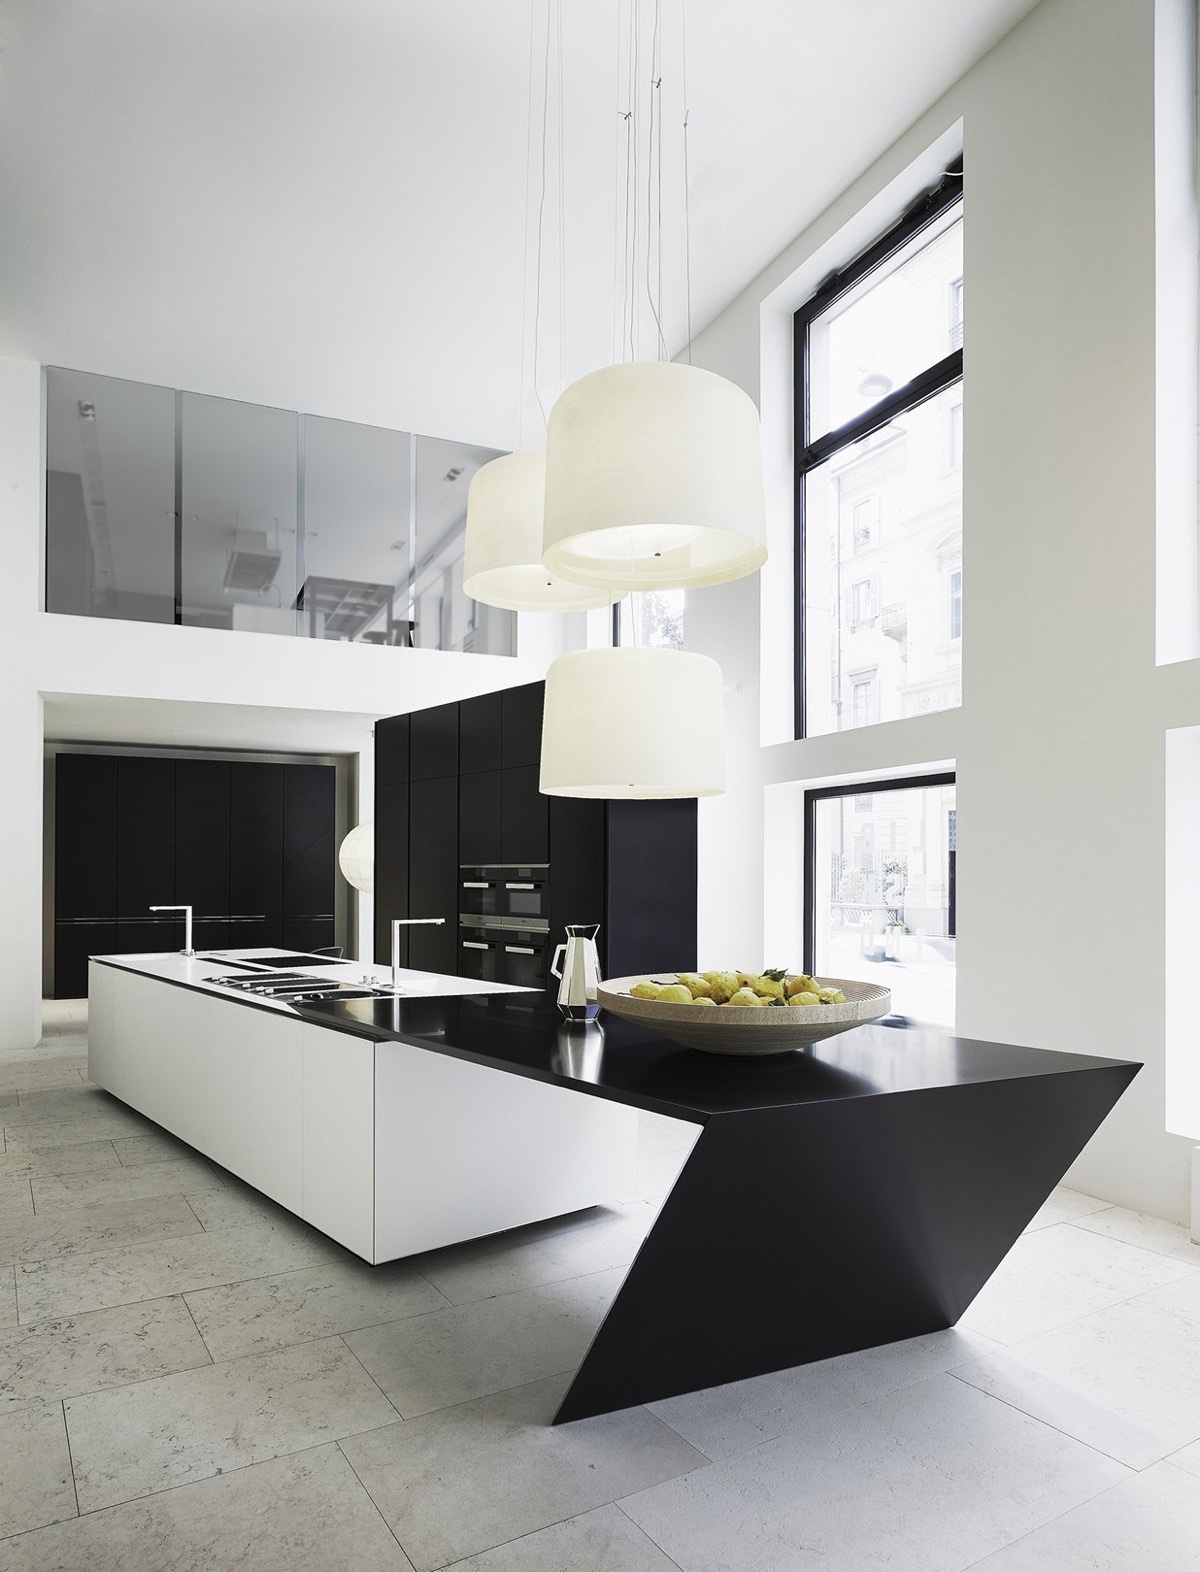 50 modern kitchen designs that use unconventional geometry - Moderne Kchen